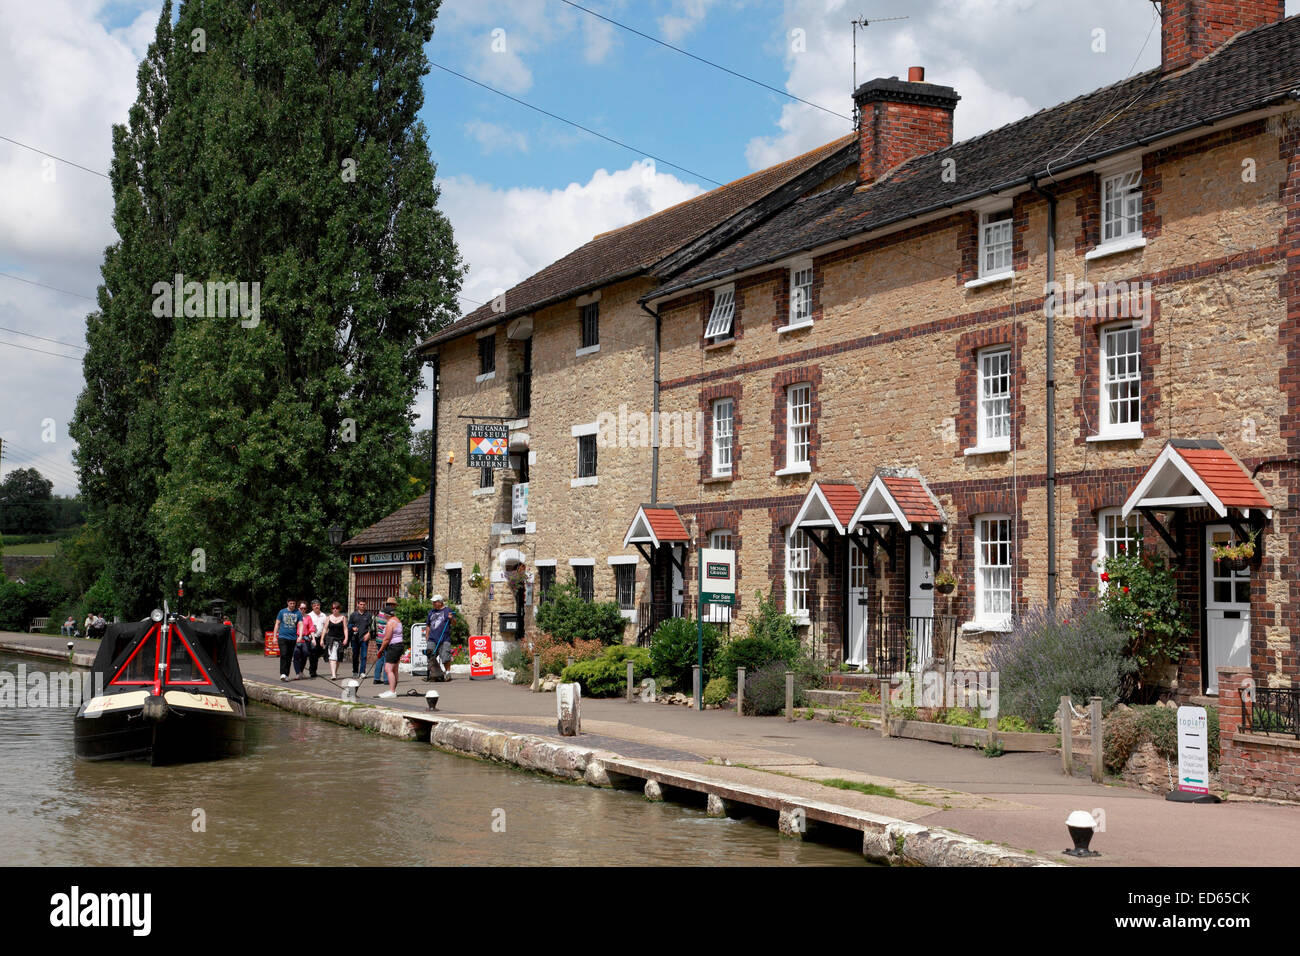 A narrowboat on the Grand Union Canal outside the Stoke Bruerne Canal Museum, Northamptonshire - Stock Image